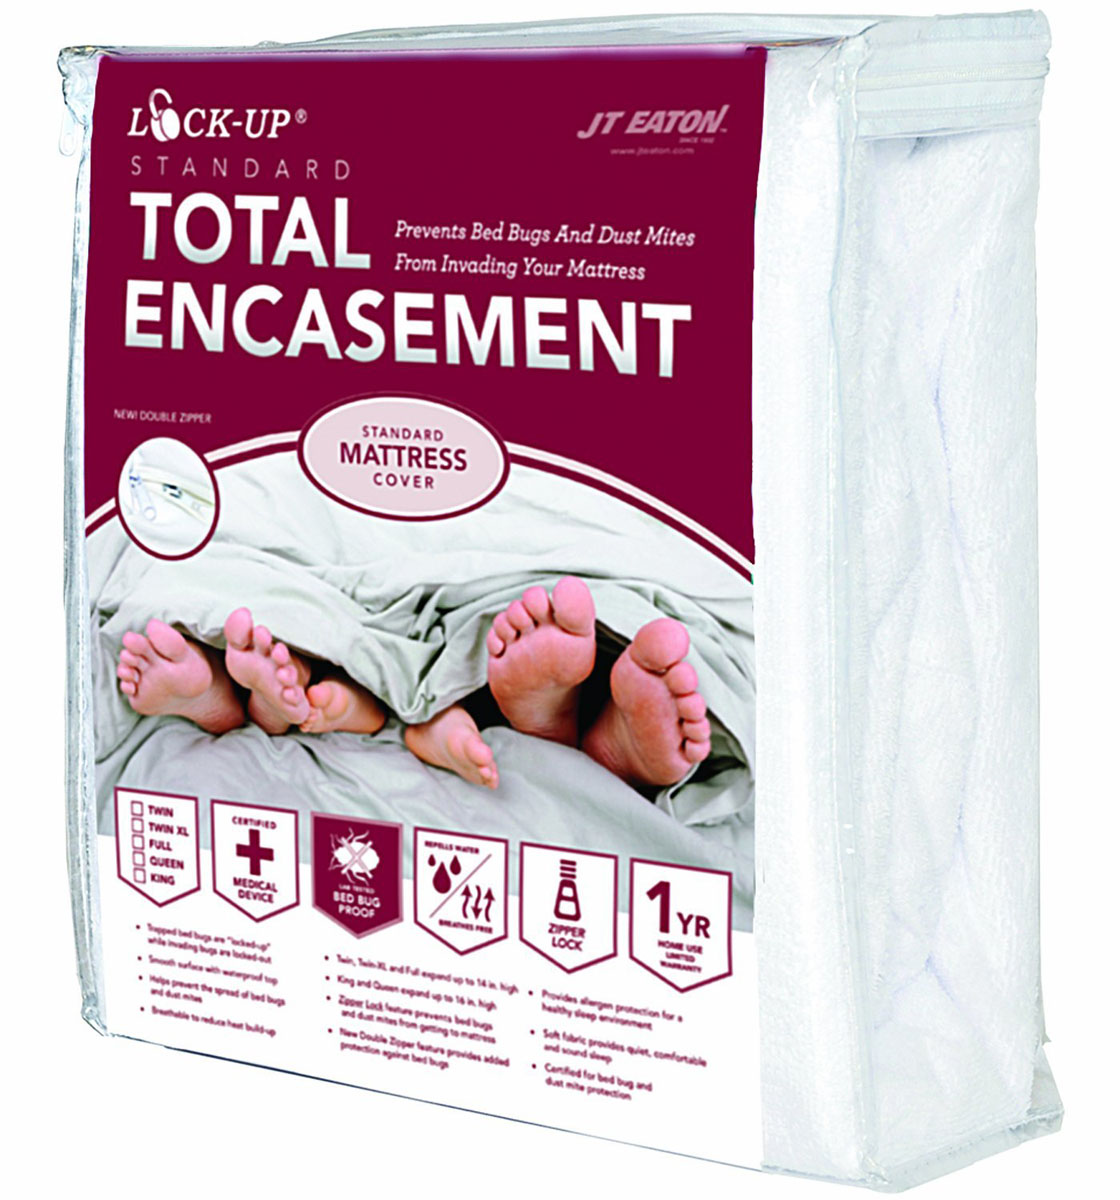 JT EATON� BED BUG LOCK-UP� TOTAL ENCASEMENT MATTRESS COVER, TWIN XL